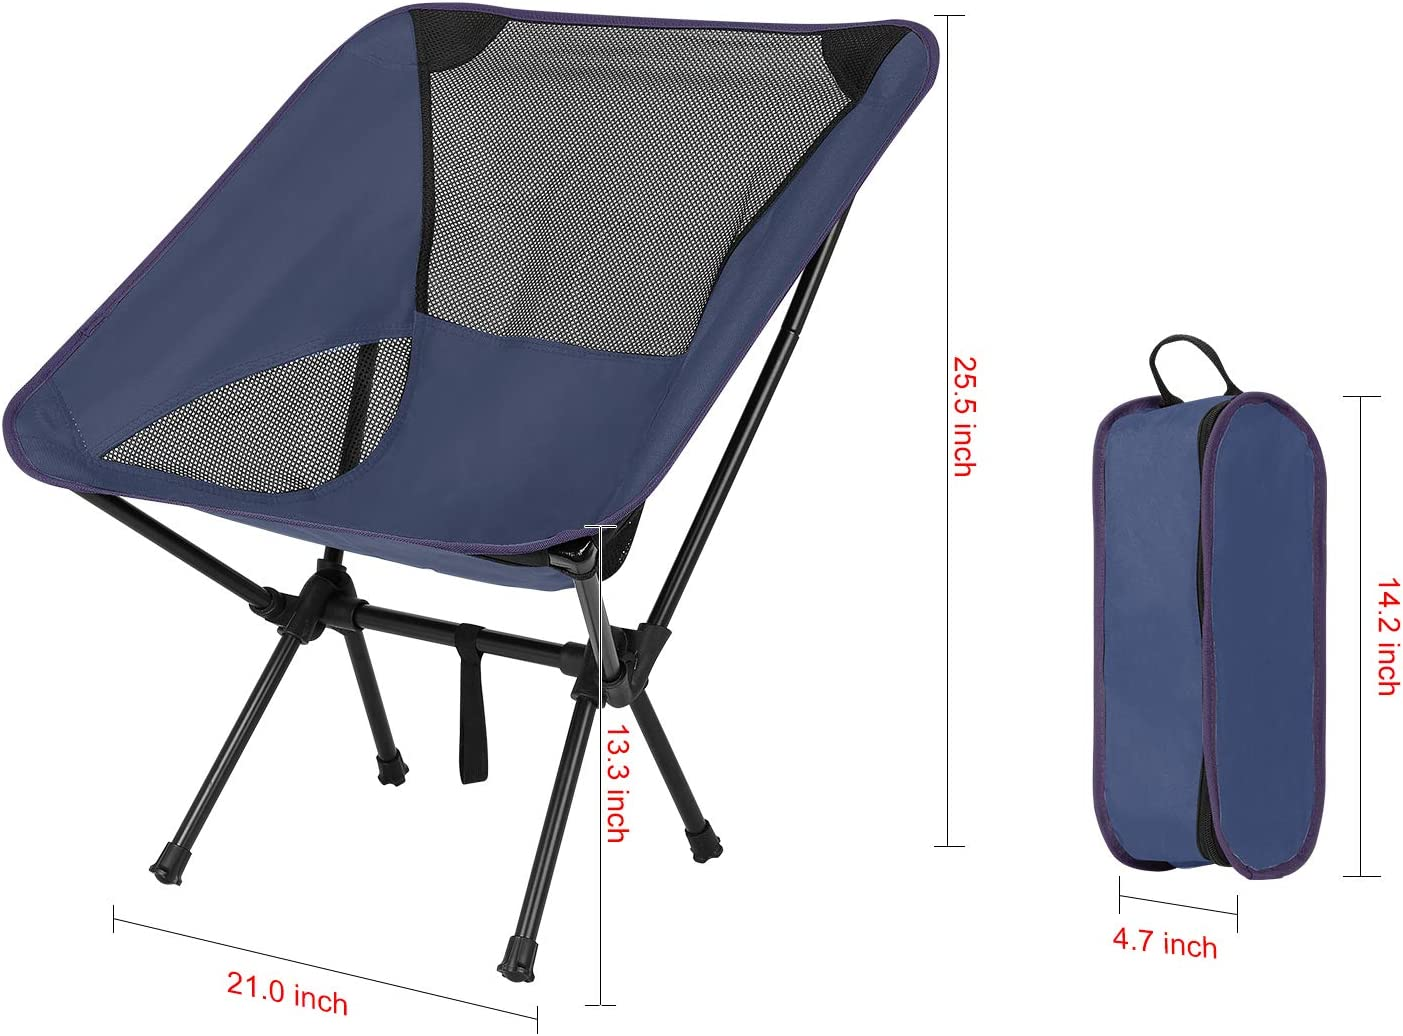 DIAHOUD Camping Chairs Fishing Beach Chair Portable Ultralight,with Carry Bag,Compact Folding Camp Chairs Heavy Duty 230lb Capacity for Outdoor Camp,Hiking,Picnic-Navy